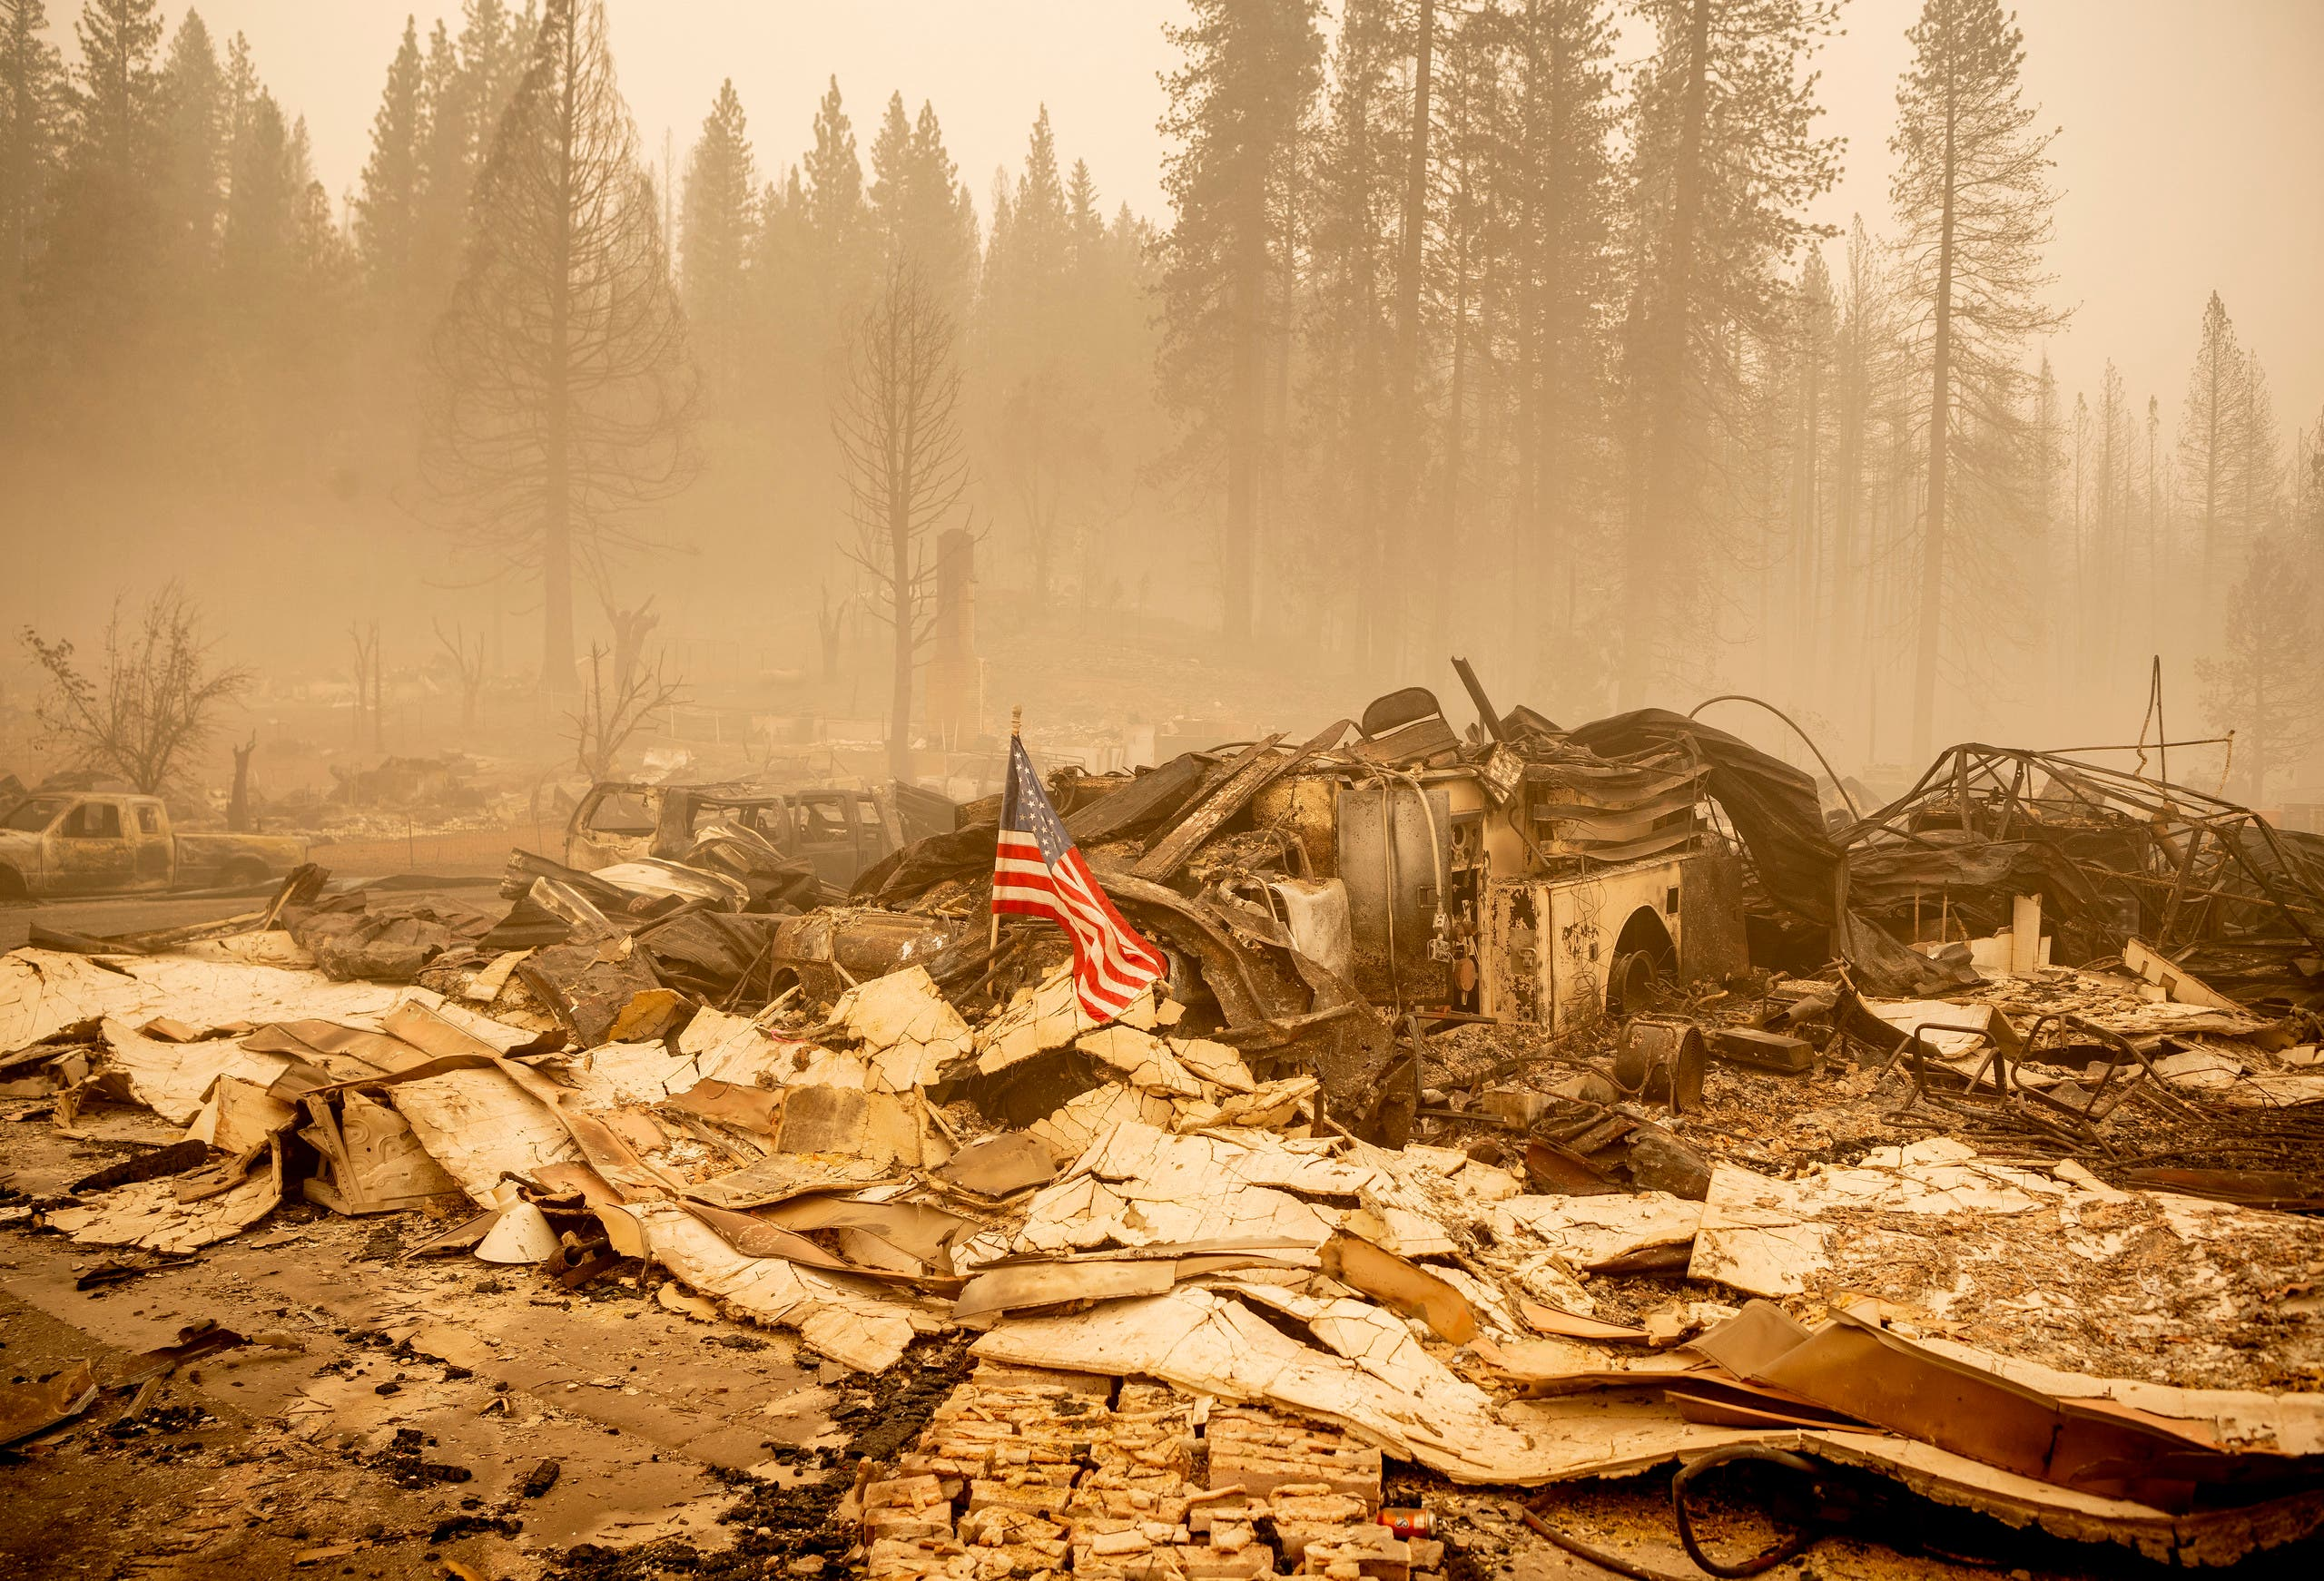 An American flag is placed on a burned fire engine at a burned fire station in downtown Greenville, California on August 7, 2021. (AFP)